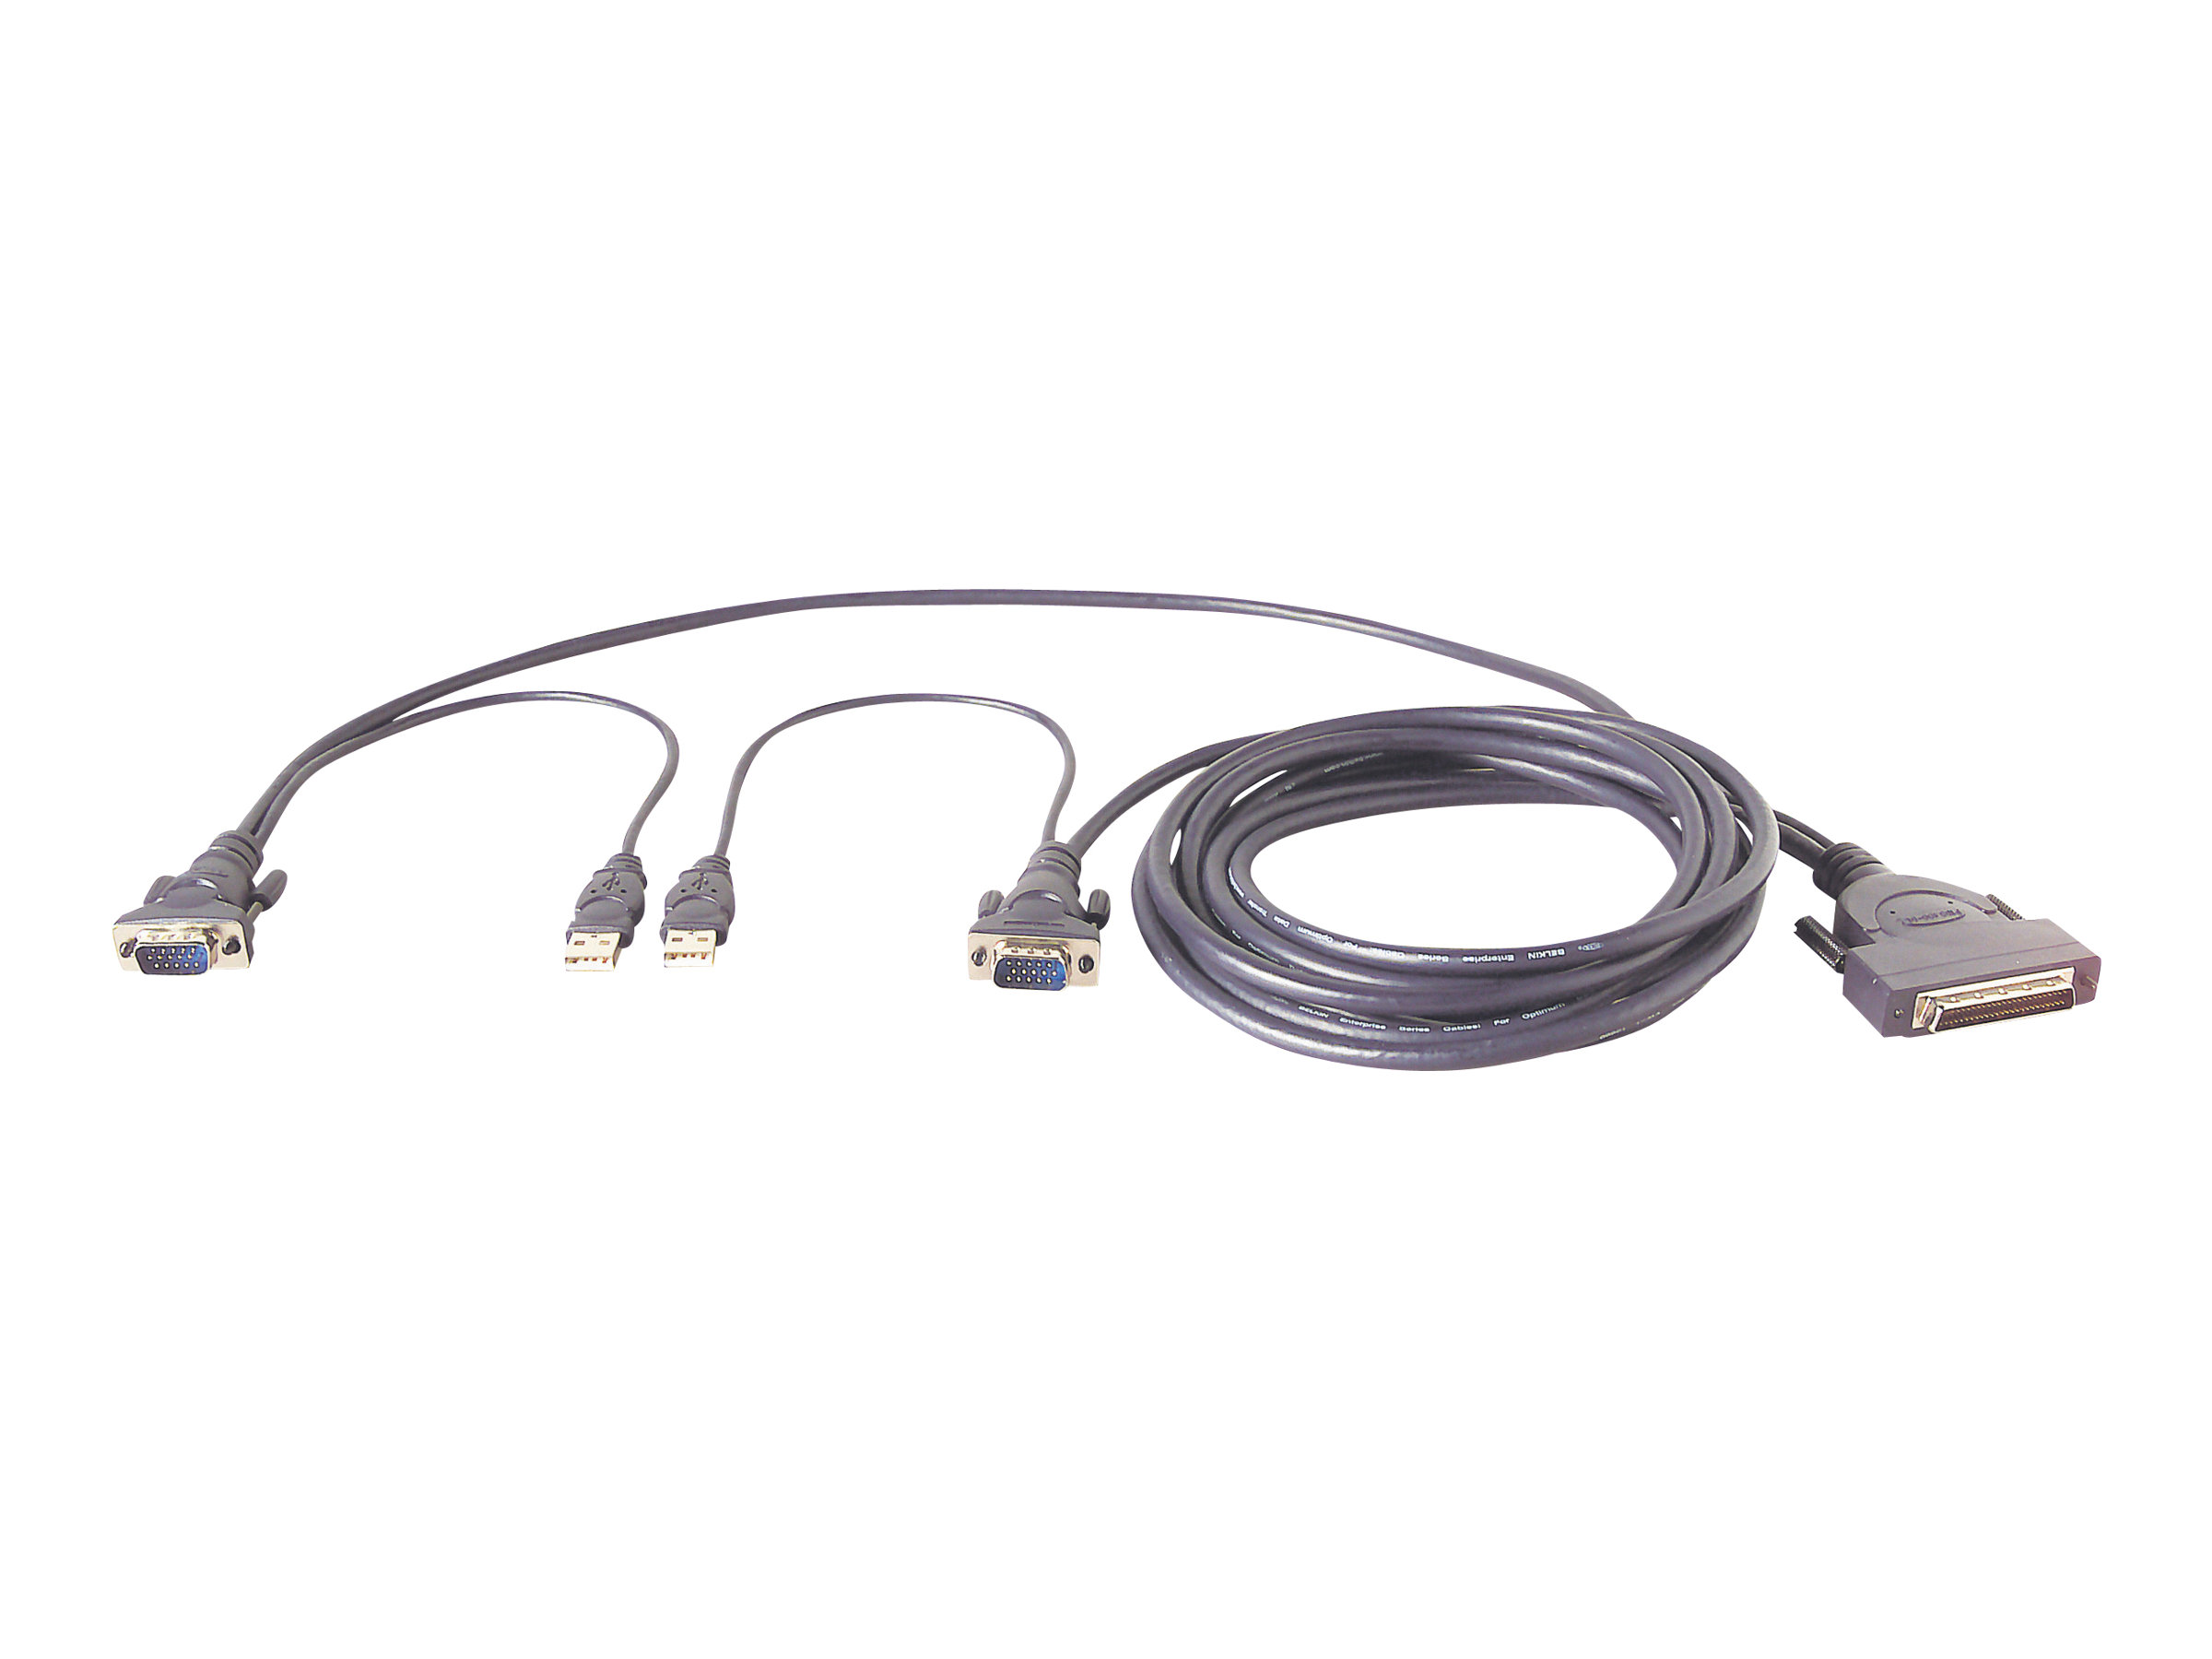 Belkin OmniView Dual Port Cable, USB - keyboard / video / mouse (KVM) cable - 3.7 m - B2B